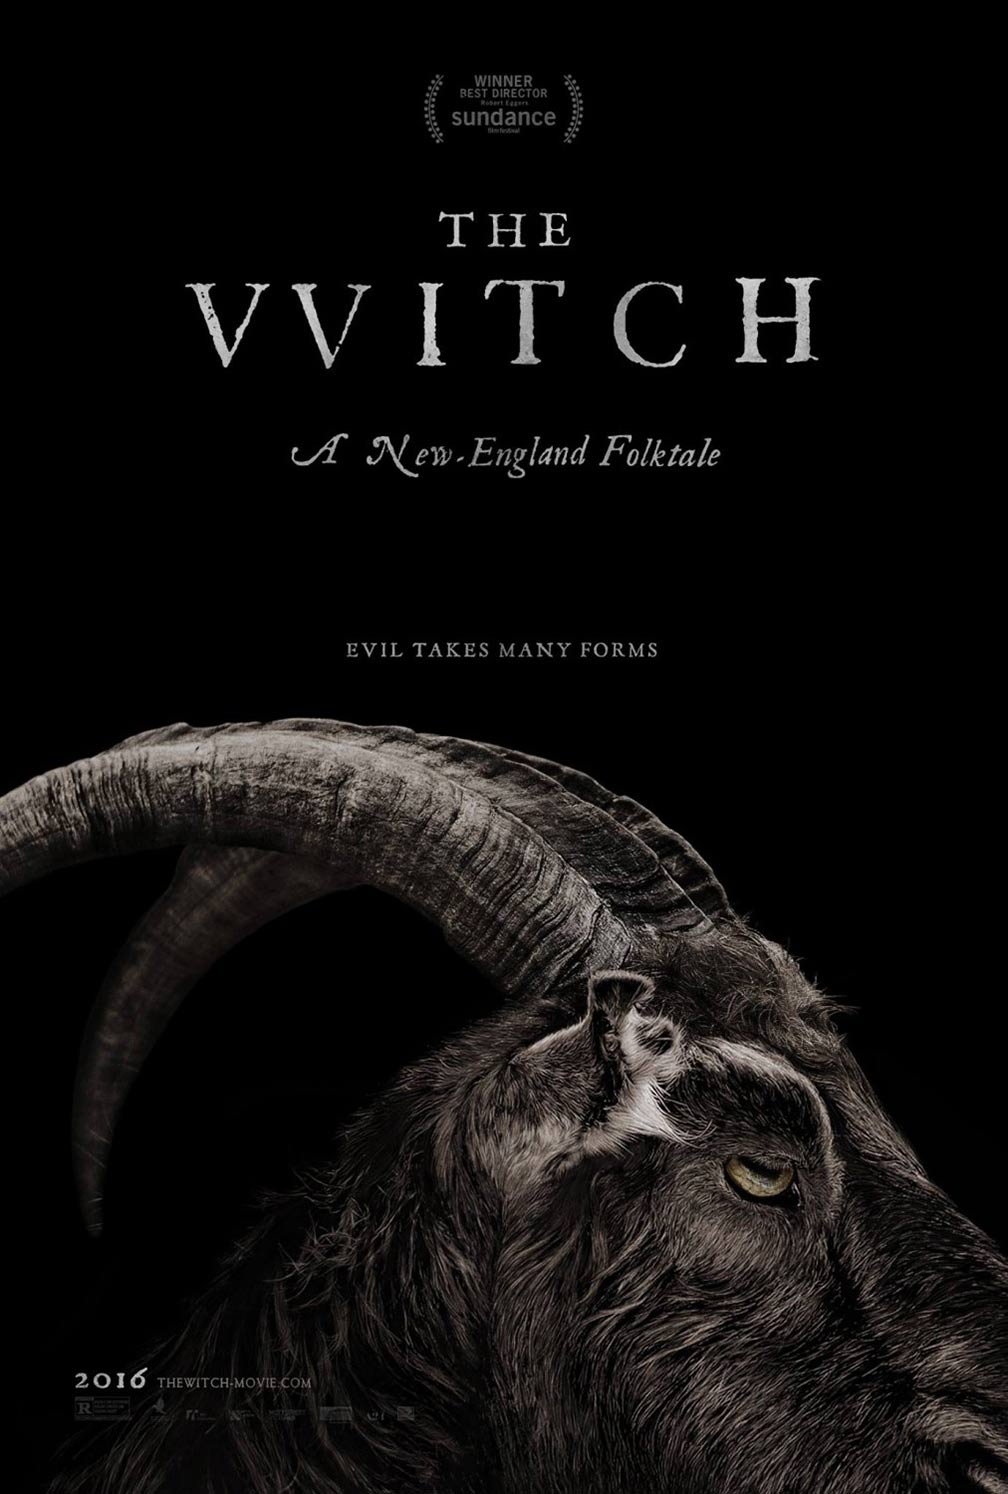 The Witch (2016) Posters - TrailerAddict